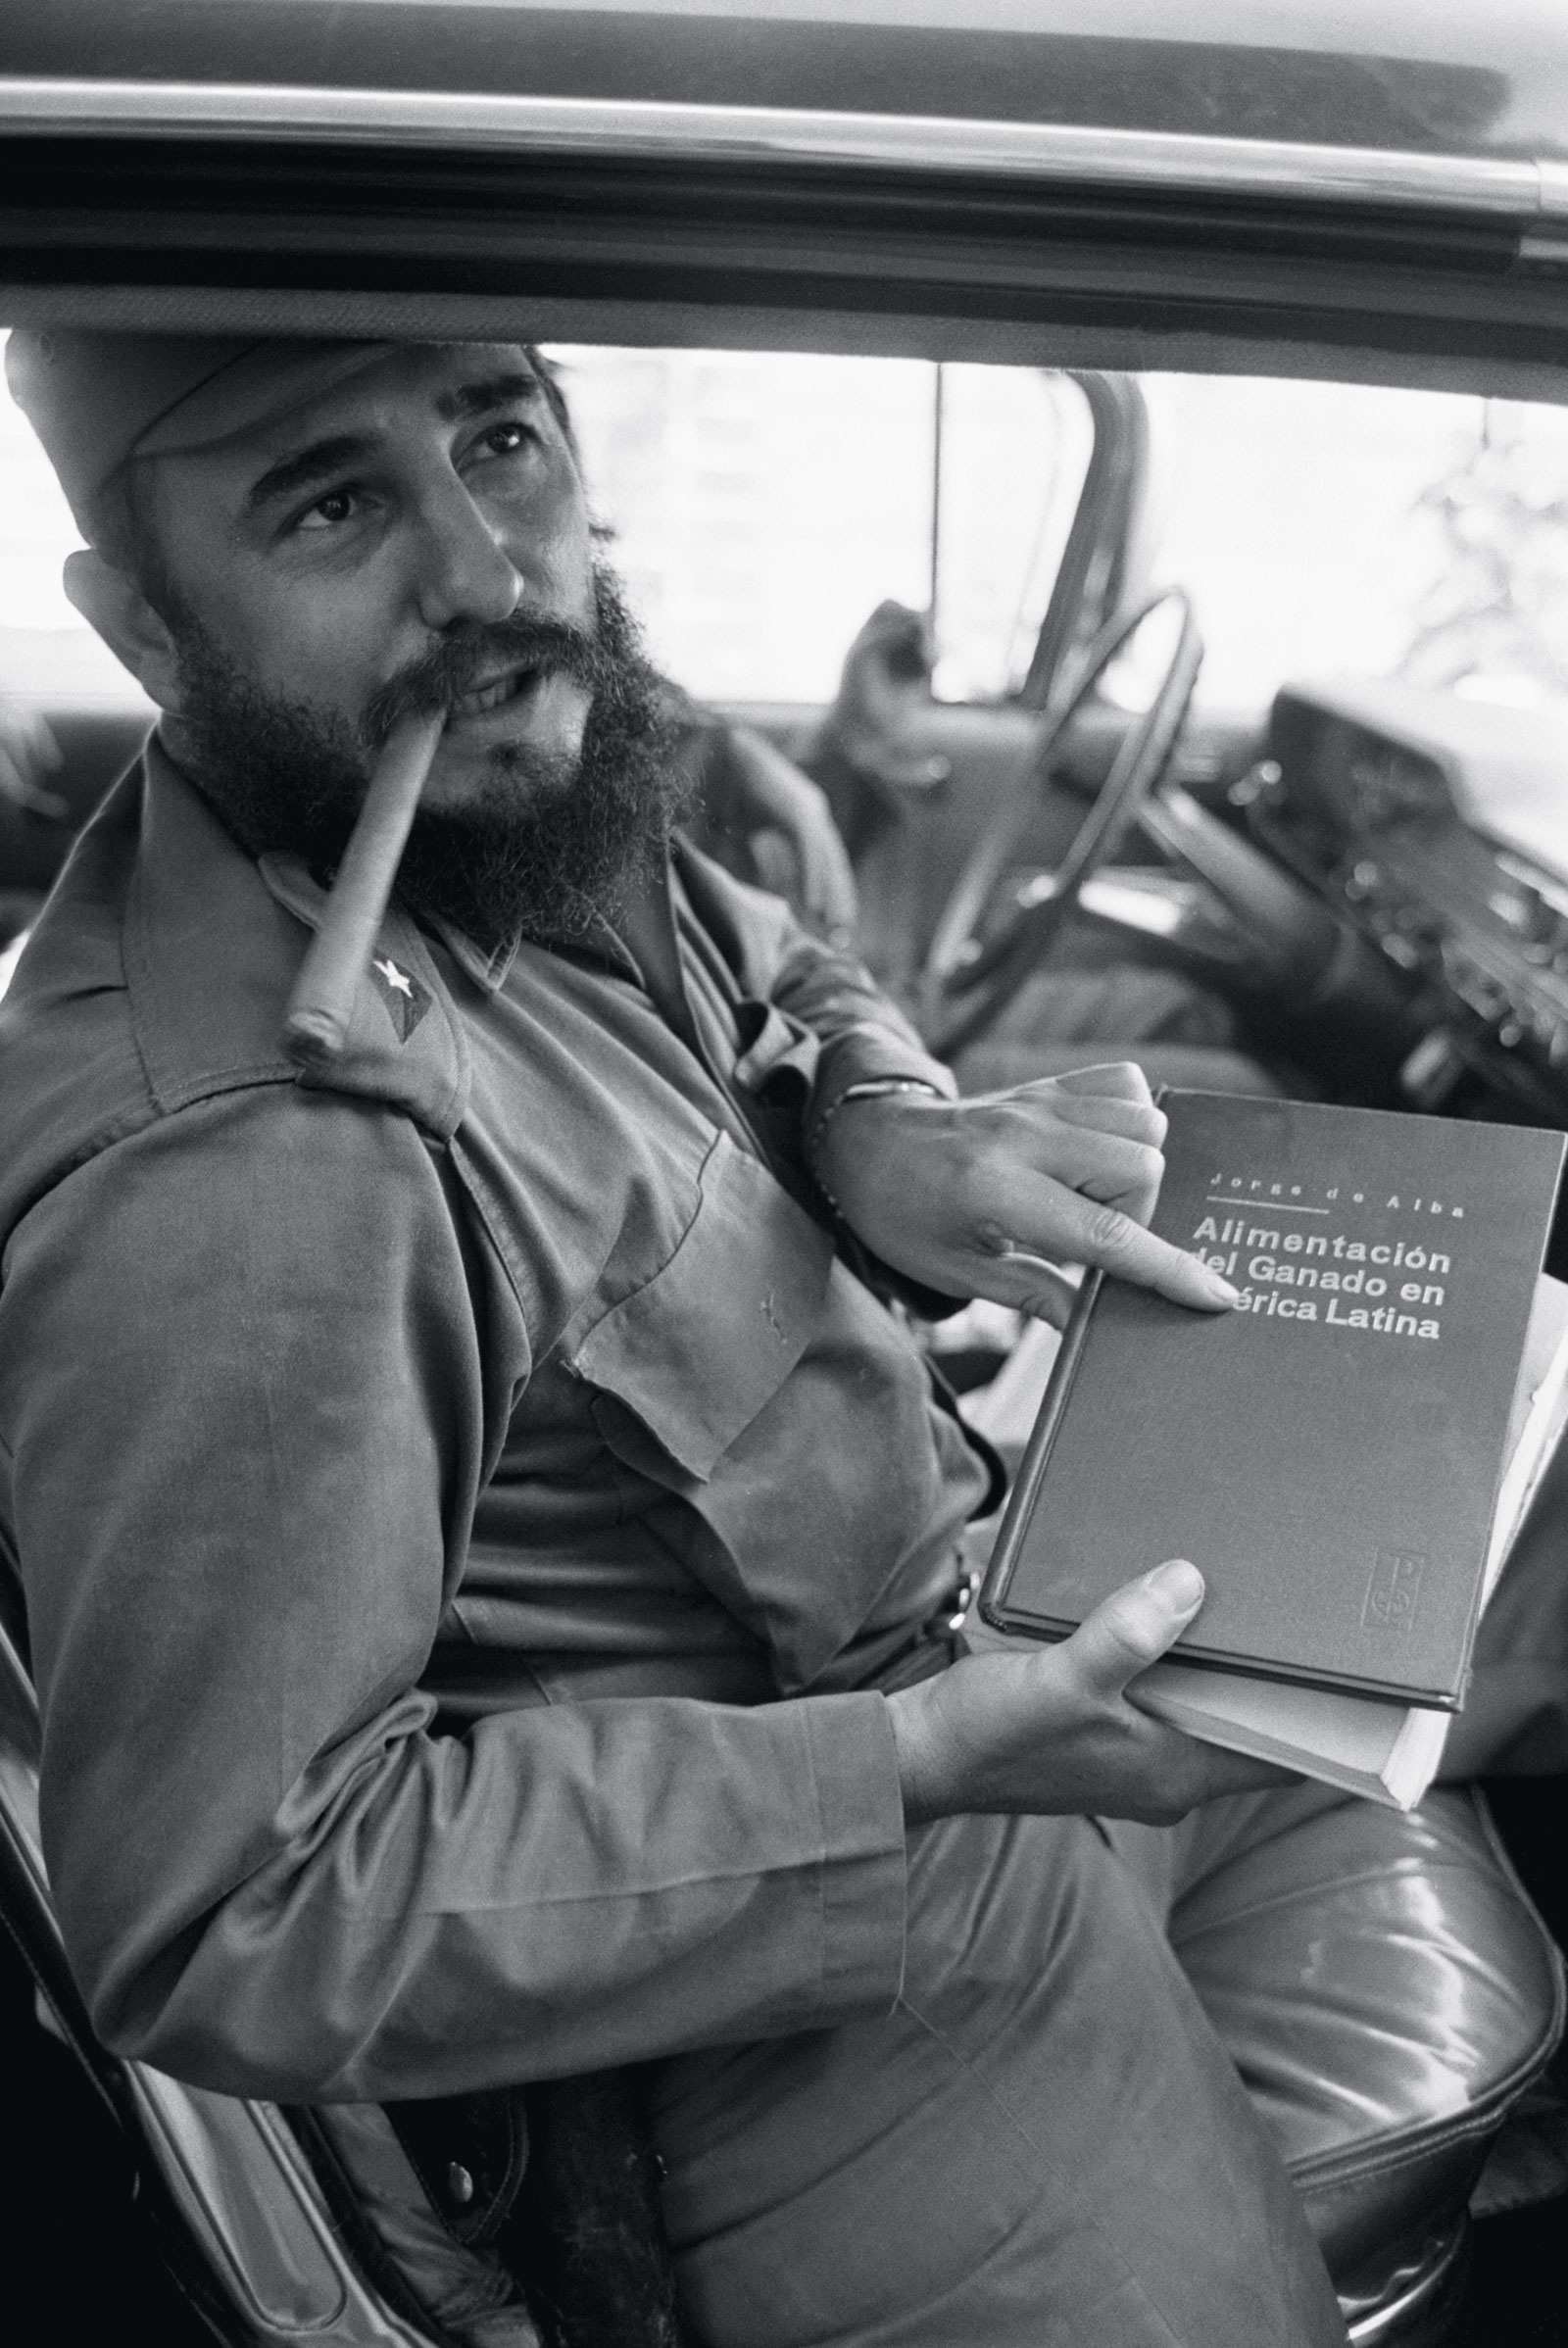 Fidel Castro holding <em>The Feeding of Cattle in Latin America</em>, by Mexican author Jorge de Alba, 1964